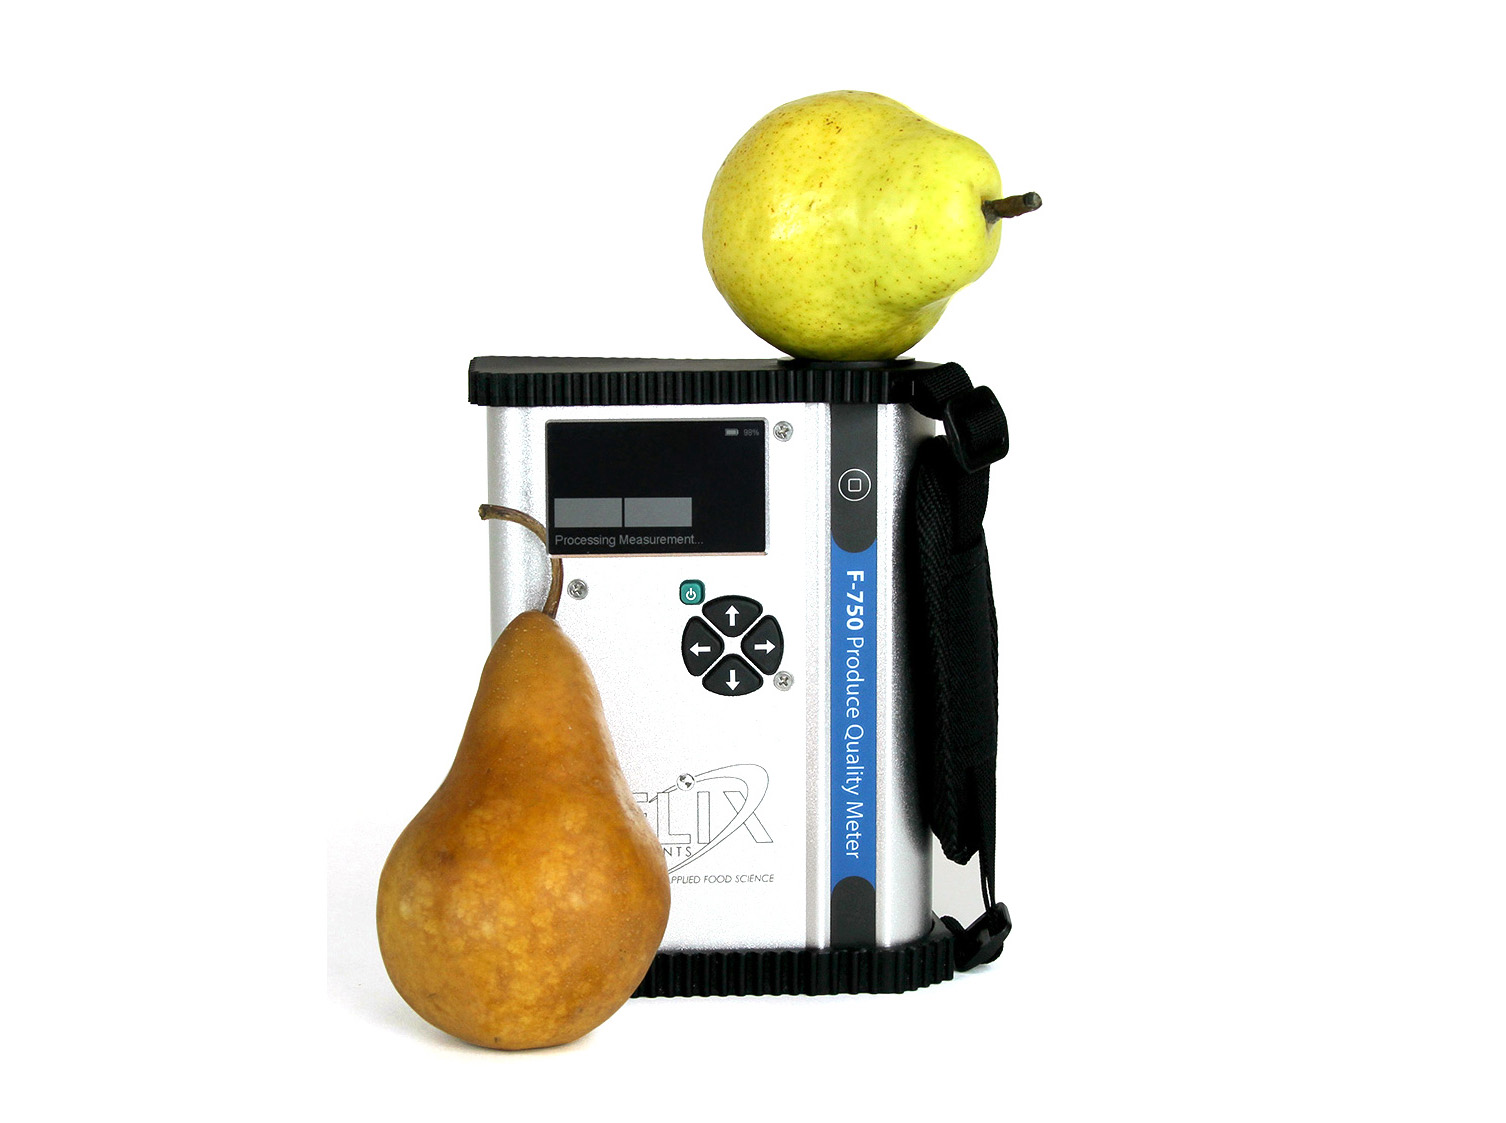 F 750 produce quality meter tools for applied food for Cuisine instrument